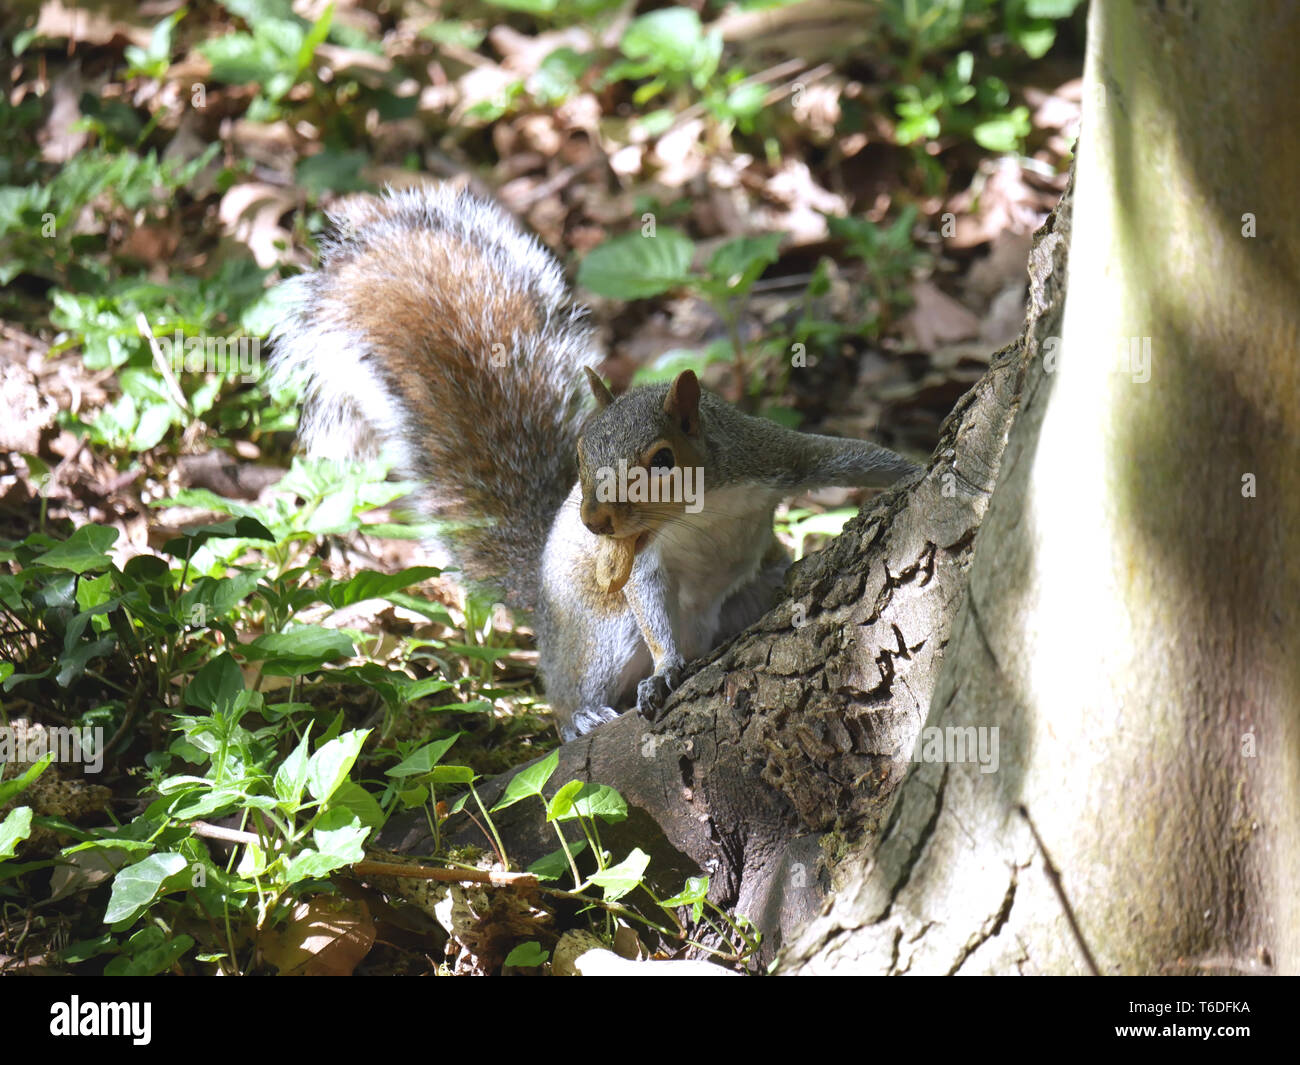 Grey squirrel Sciurus carolinensis with peanut in mouth surprised before bolting up the tree - Stock Image